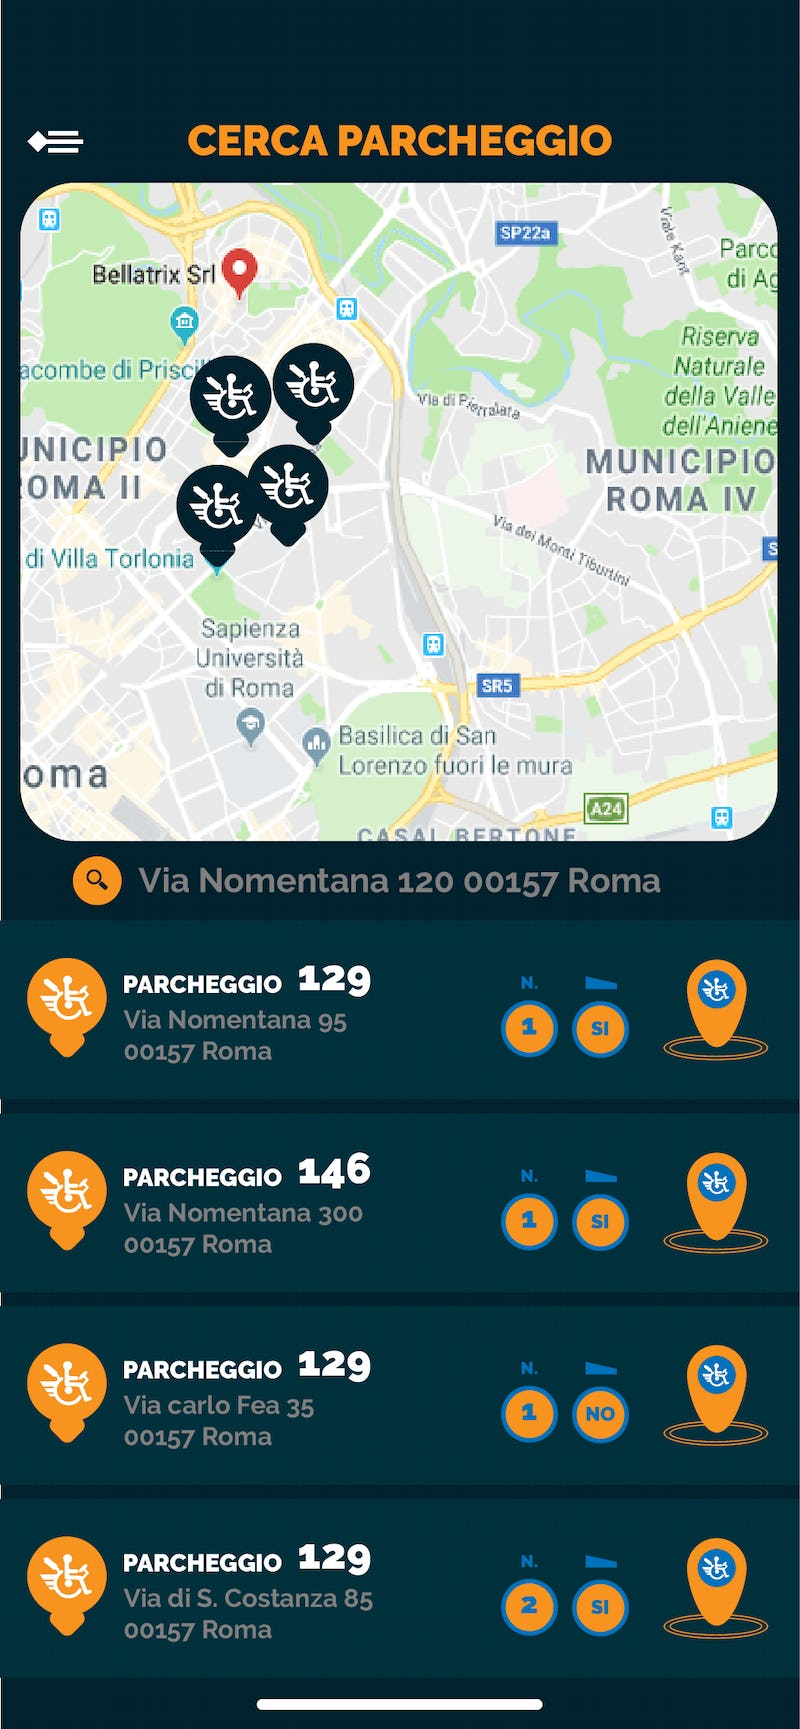 1562966457886948 myparkingspotcerca2